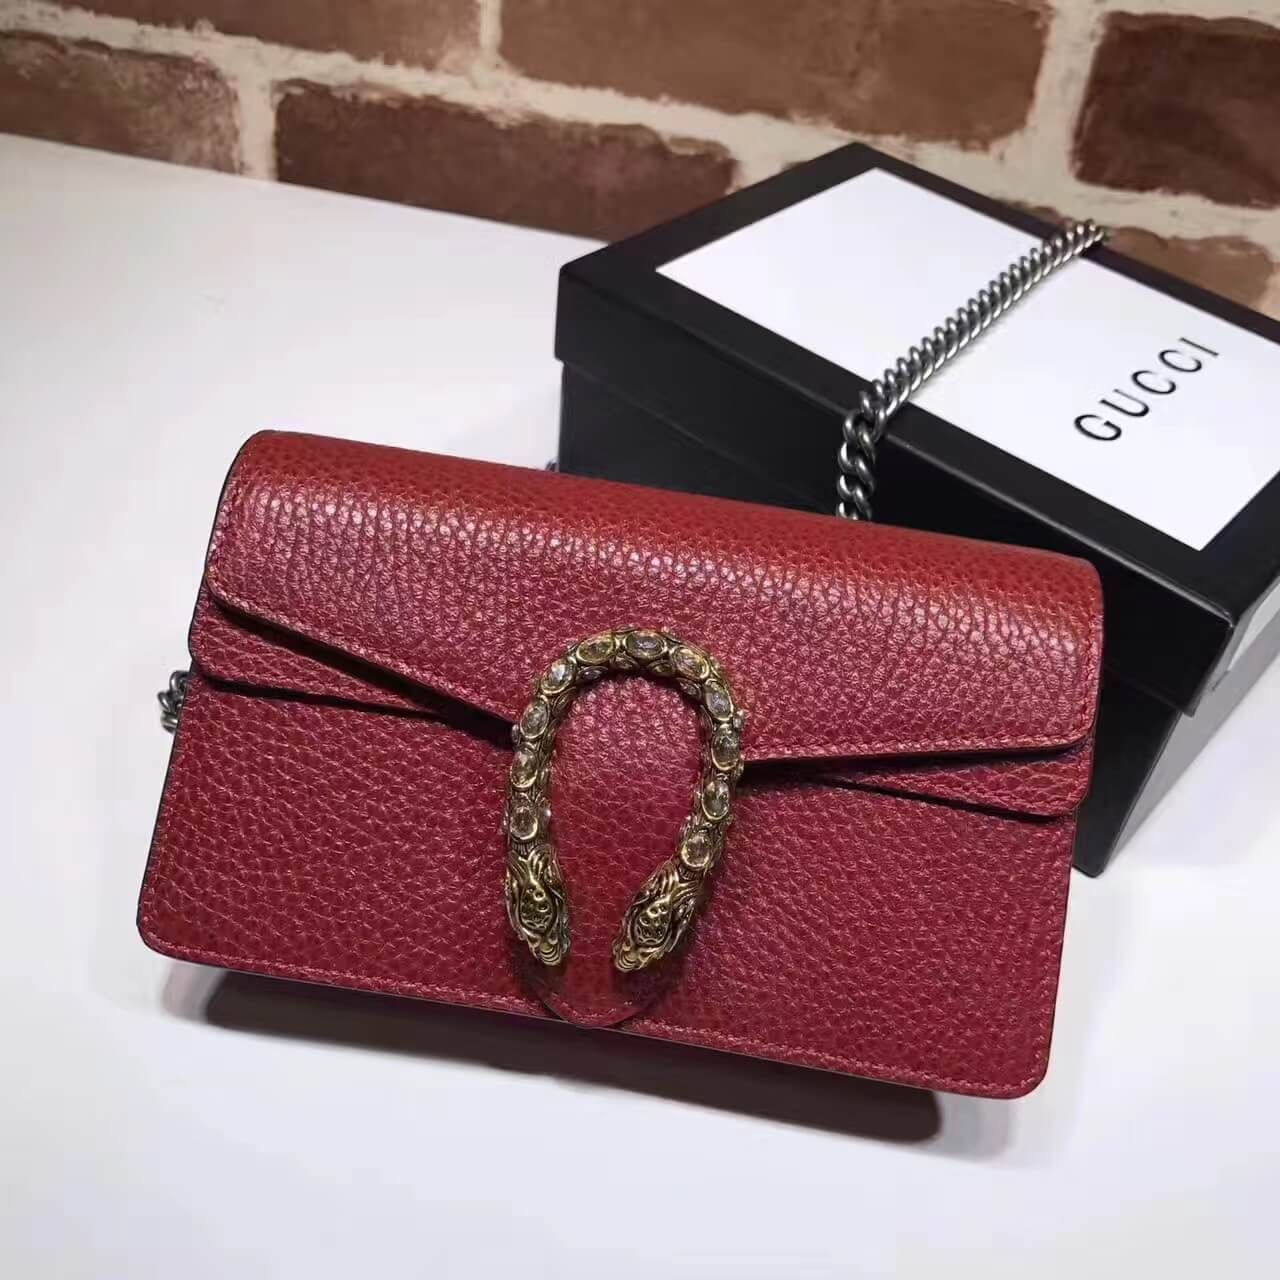 c7bb0028ce0 Gucci Dionysus Leather Super Mini Bag 476432 Red 2017